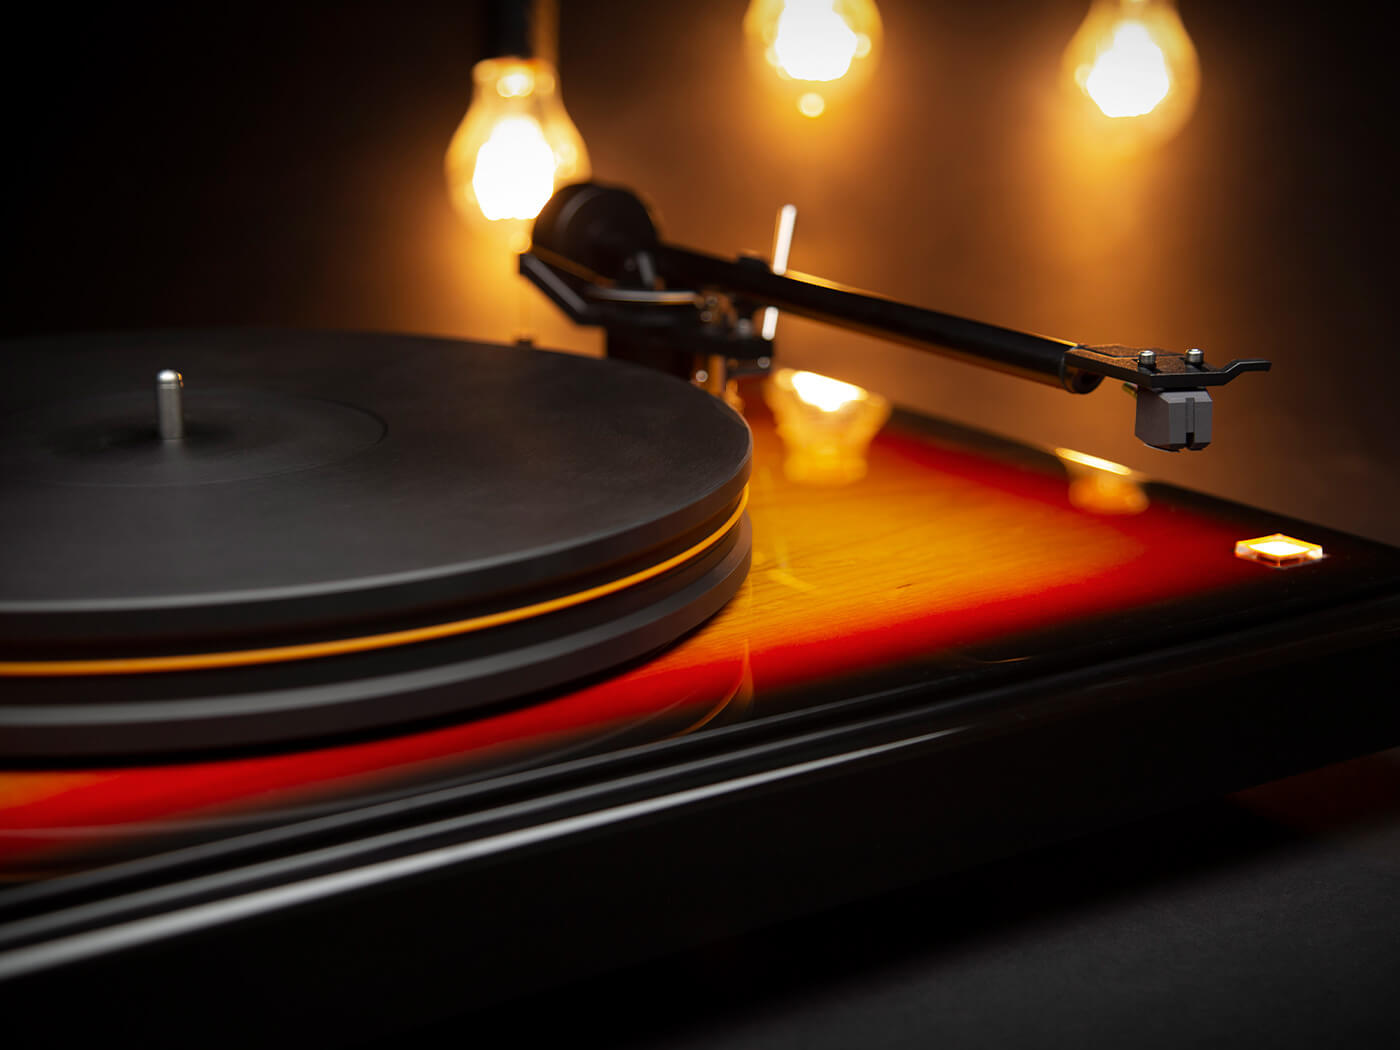 """Fender x MoFi PrecisionDeck is a """"meticulously built"""" $3,495 turntable inspired by the Precision Bass"""